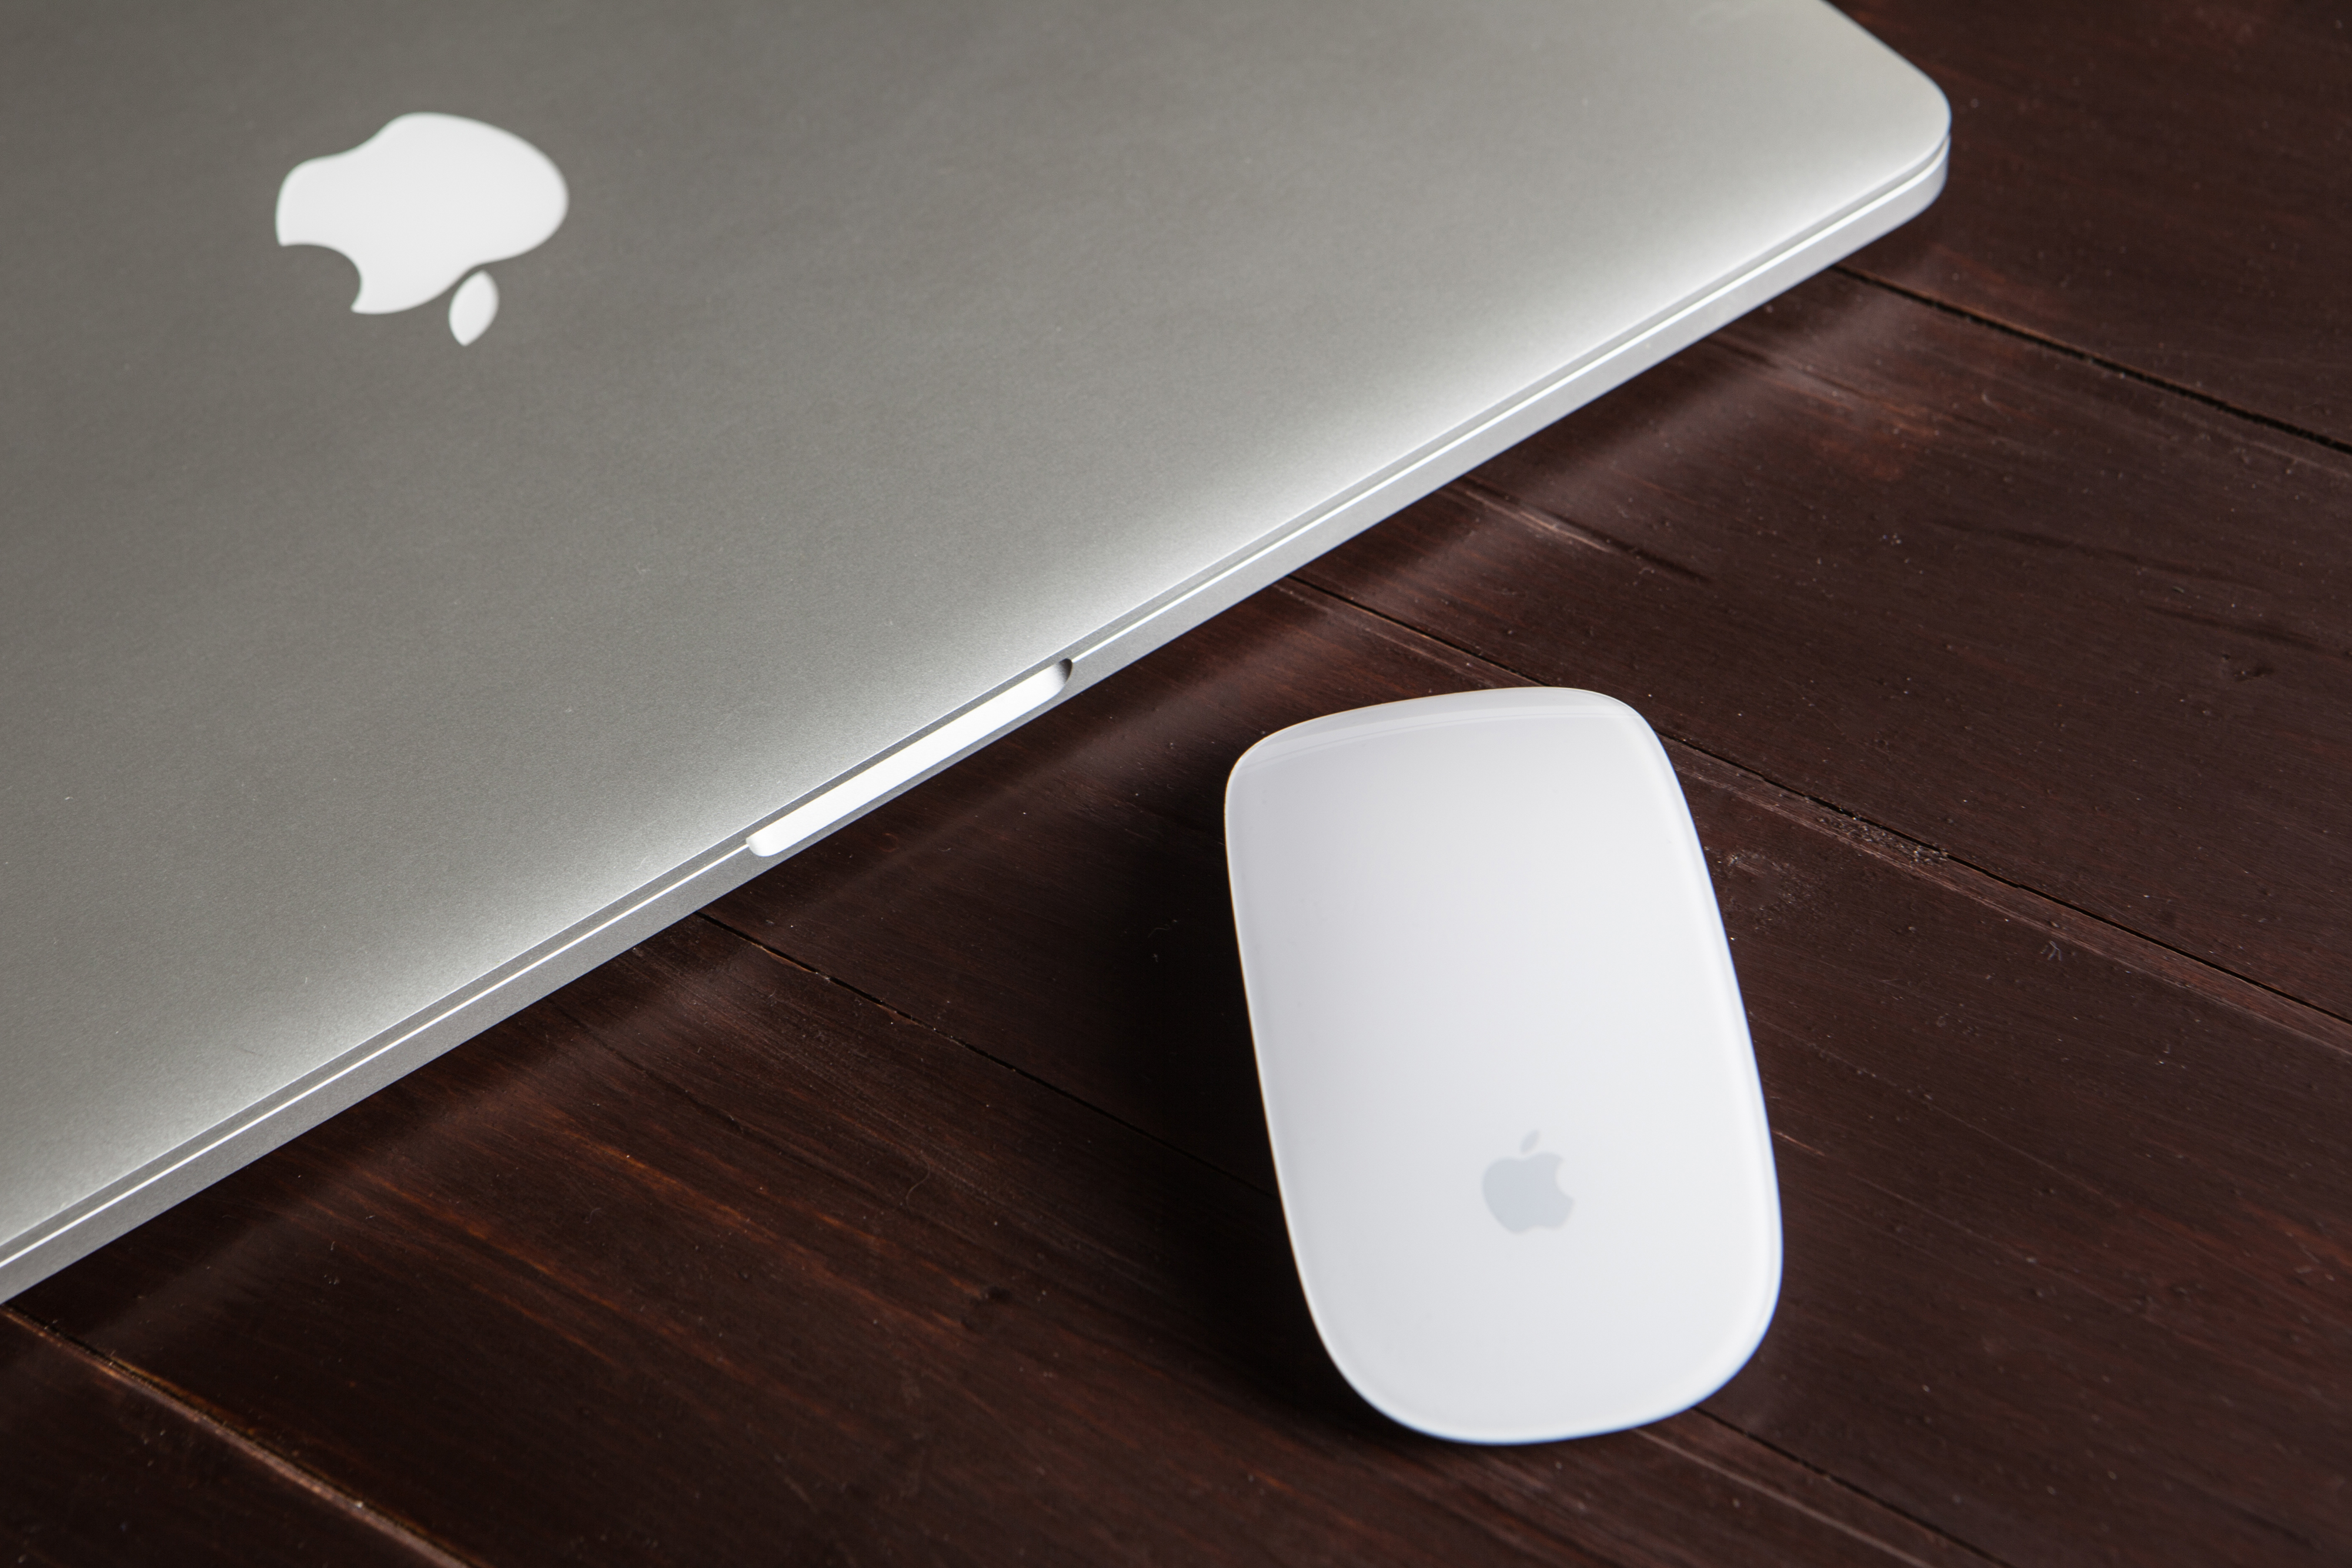 macbook-mouse